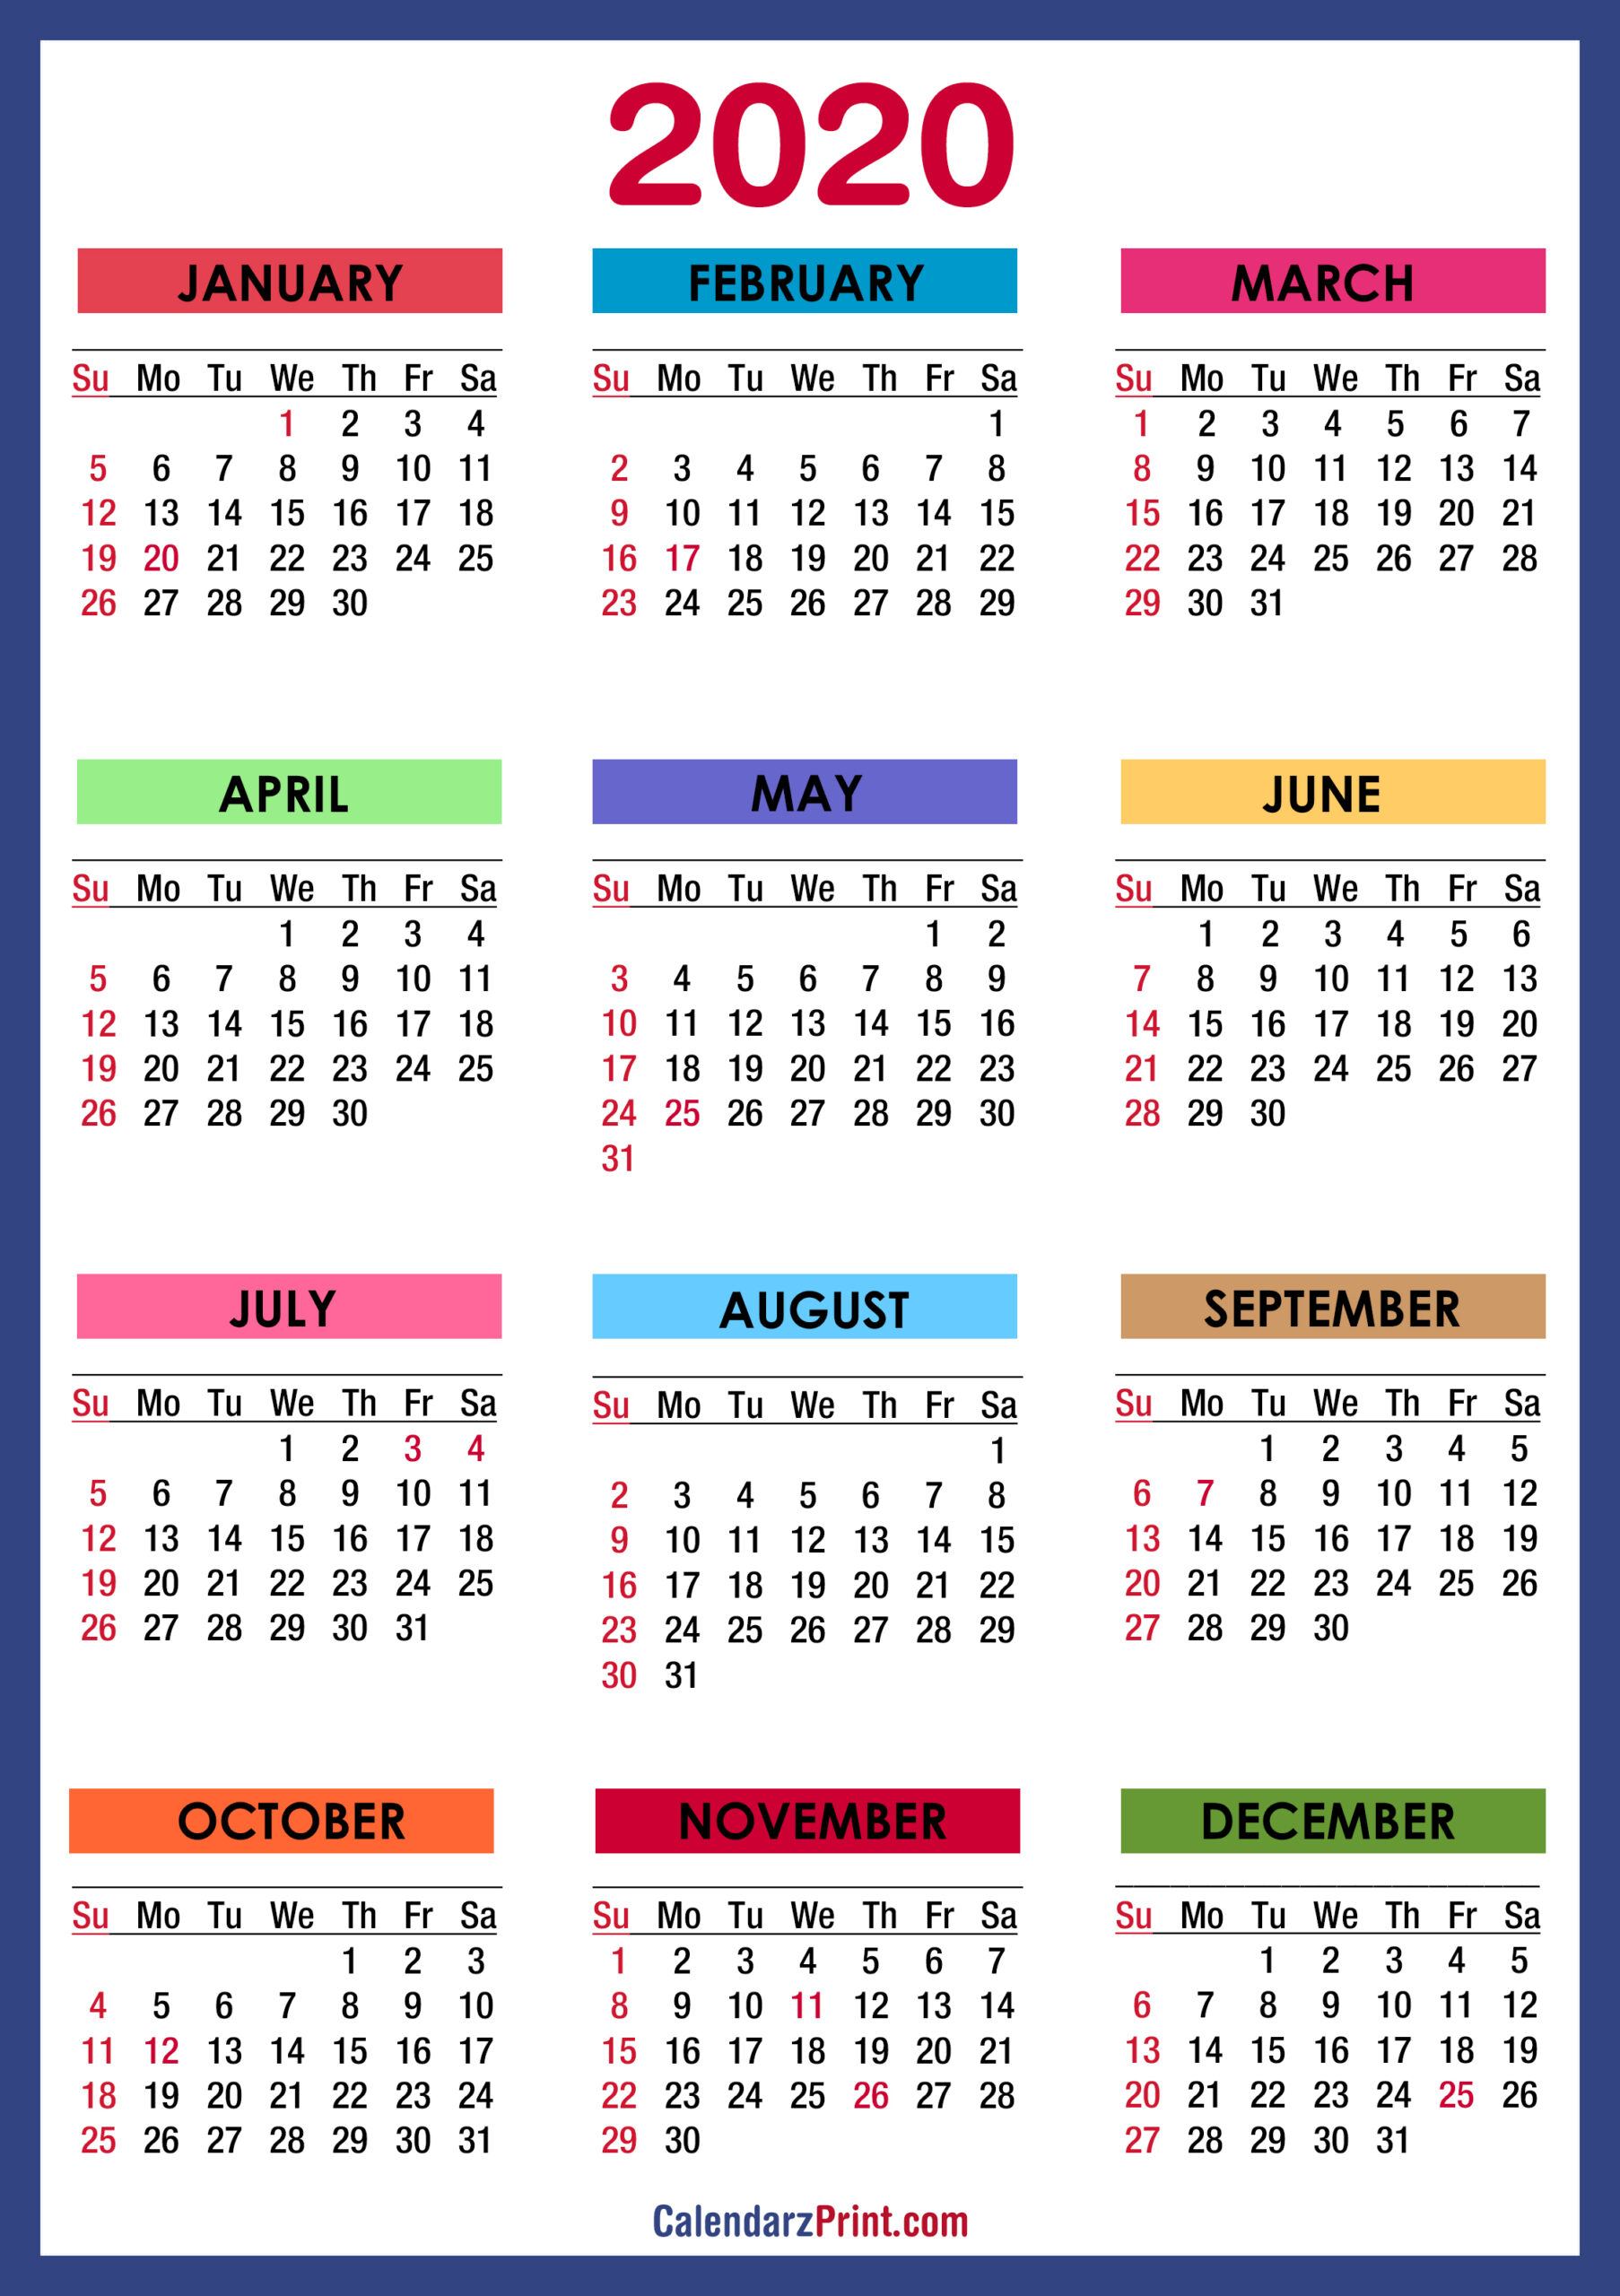 2020 Calendar With Holidays, Printable Free, Colorful